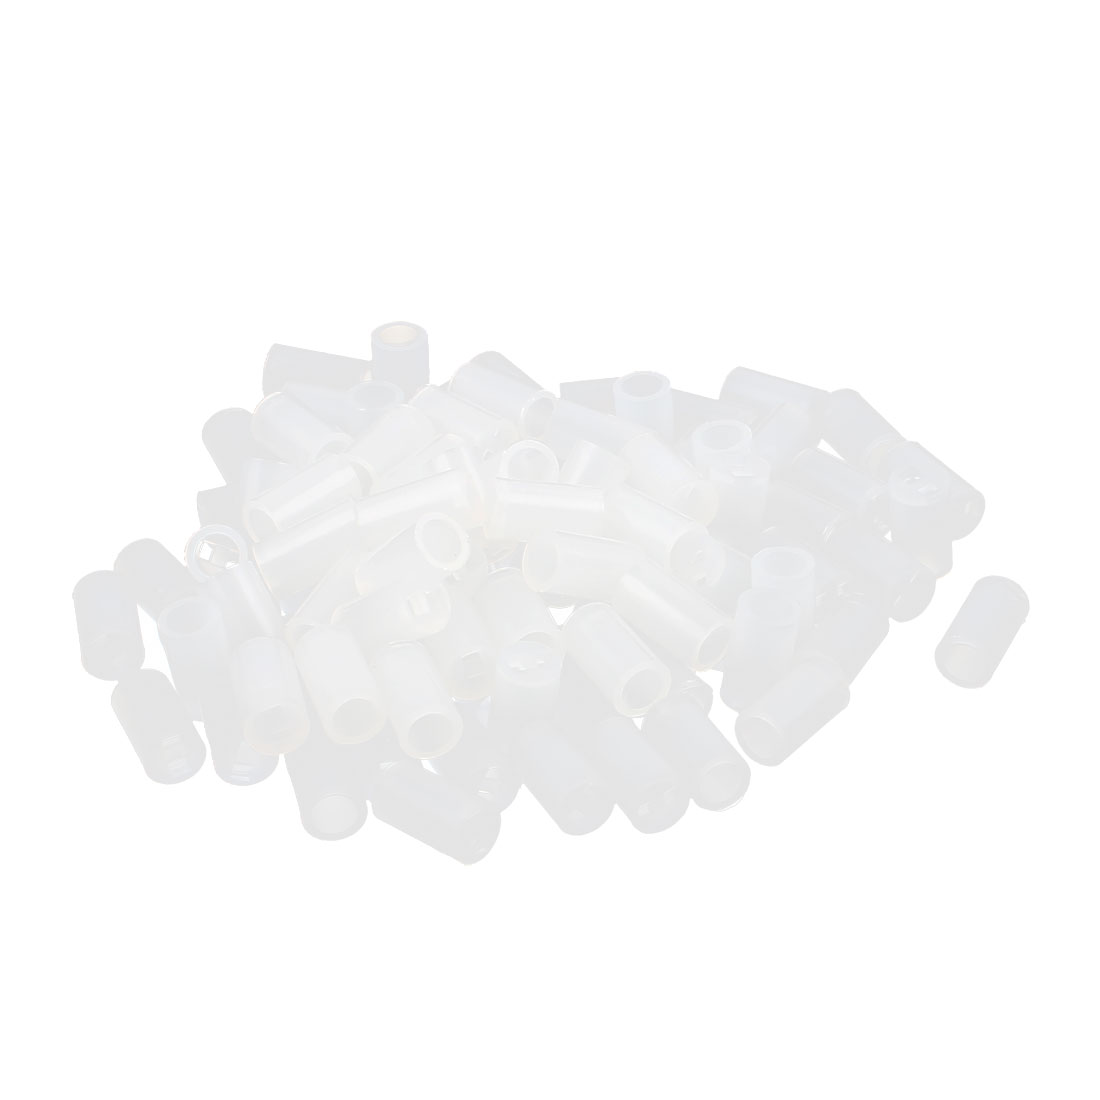 100 Pcs Nylon Cylinder LED Spacer Holder Support 3mm x 7mm Clear